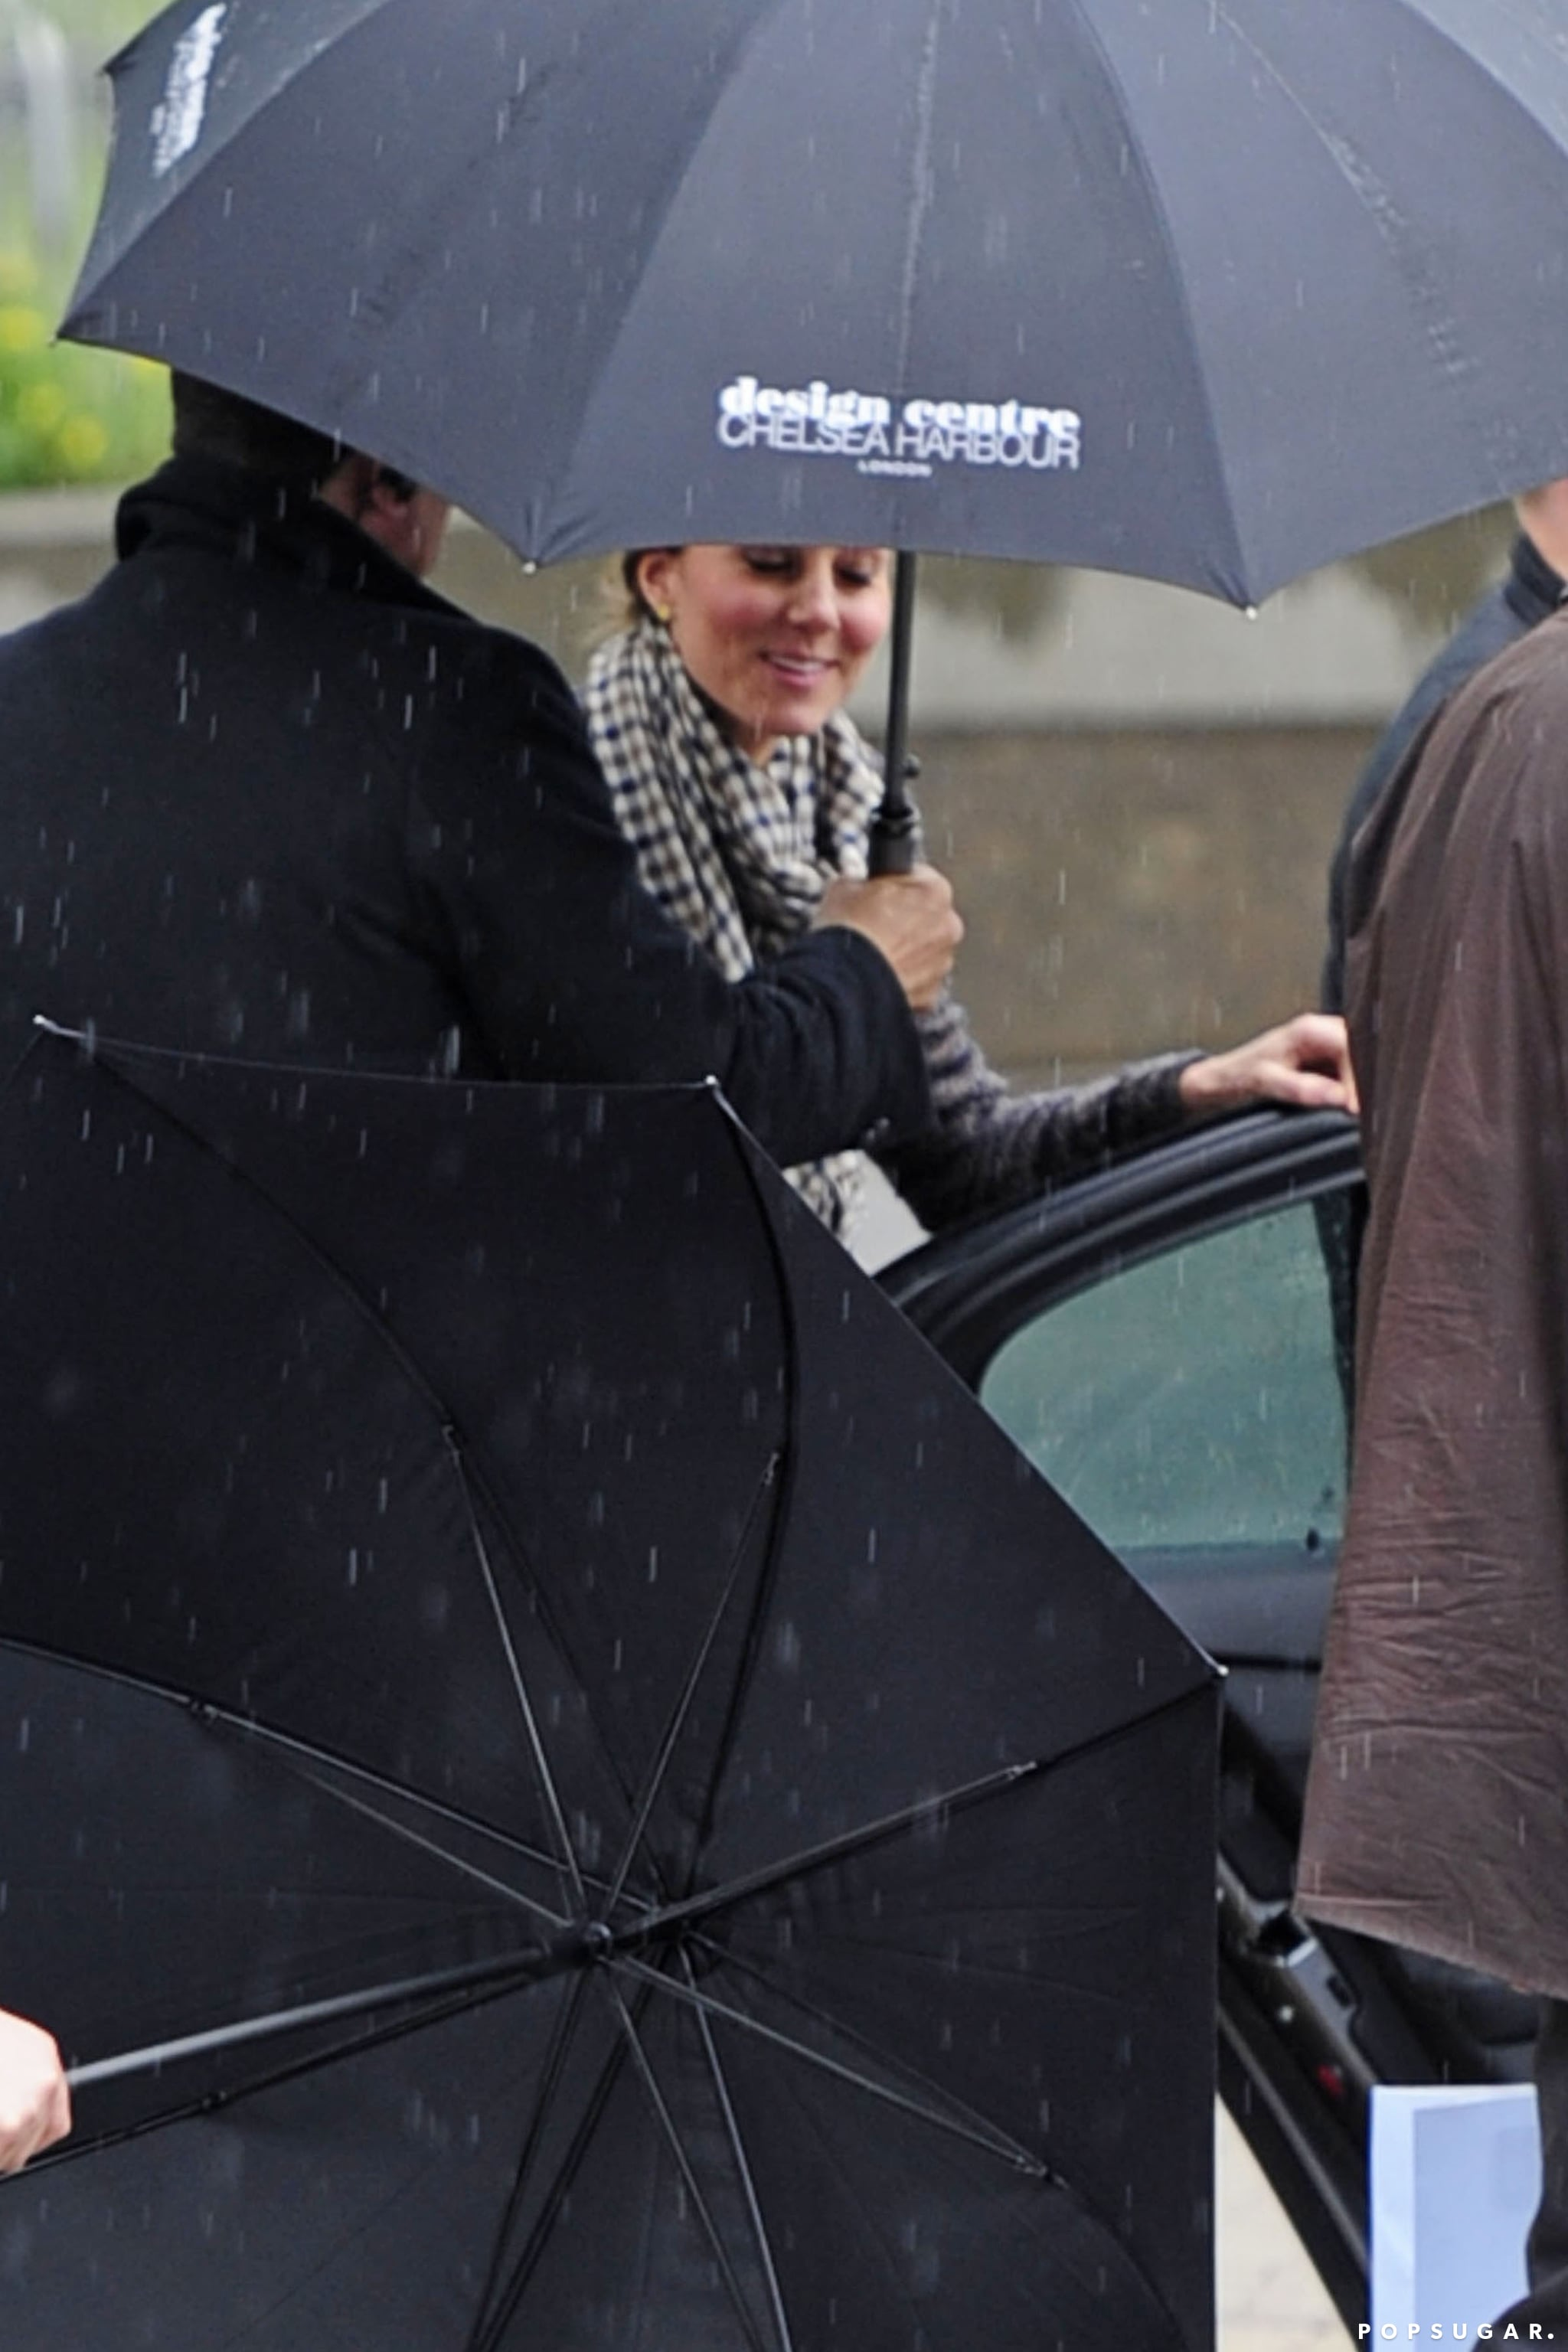 Kate Middleton got into an awaiting car after a shopping trip in London.